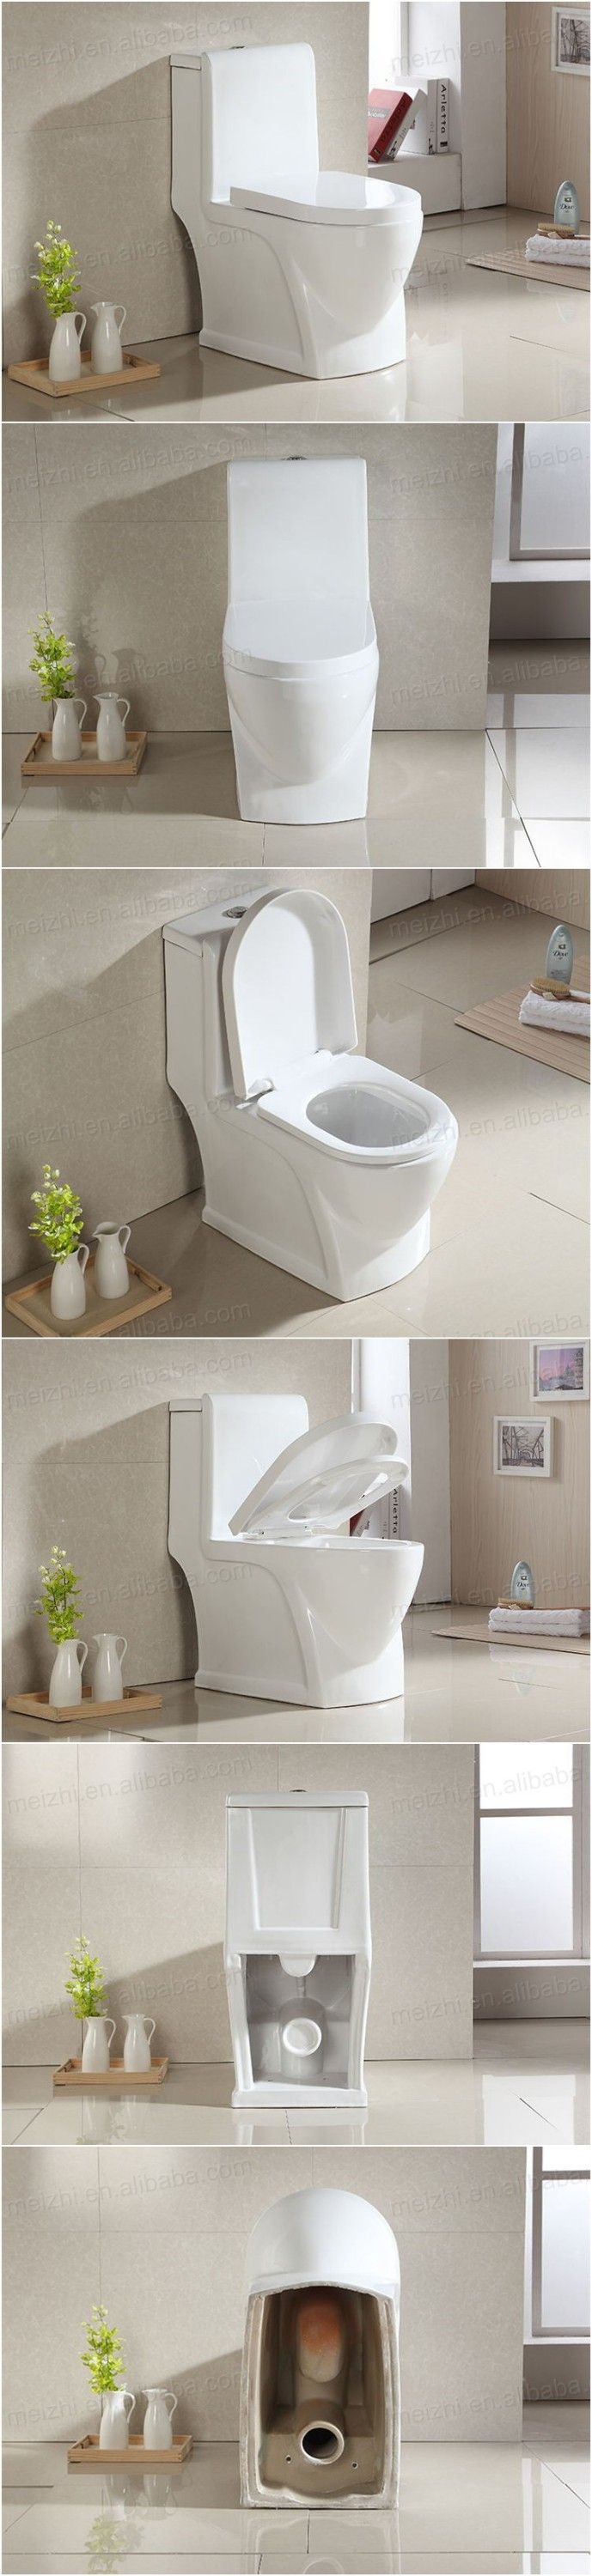 M8010 dry flush waterless turkish toilets for sale